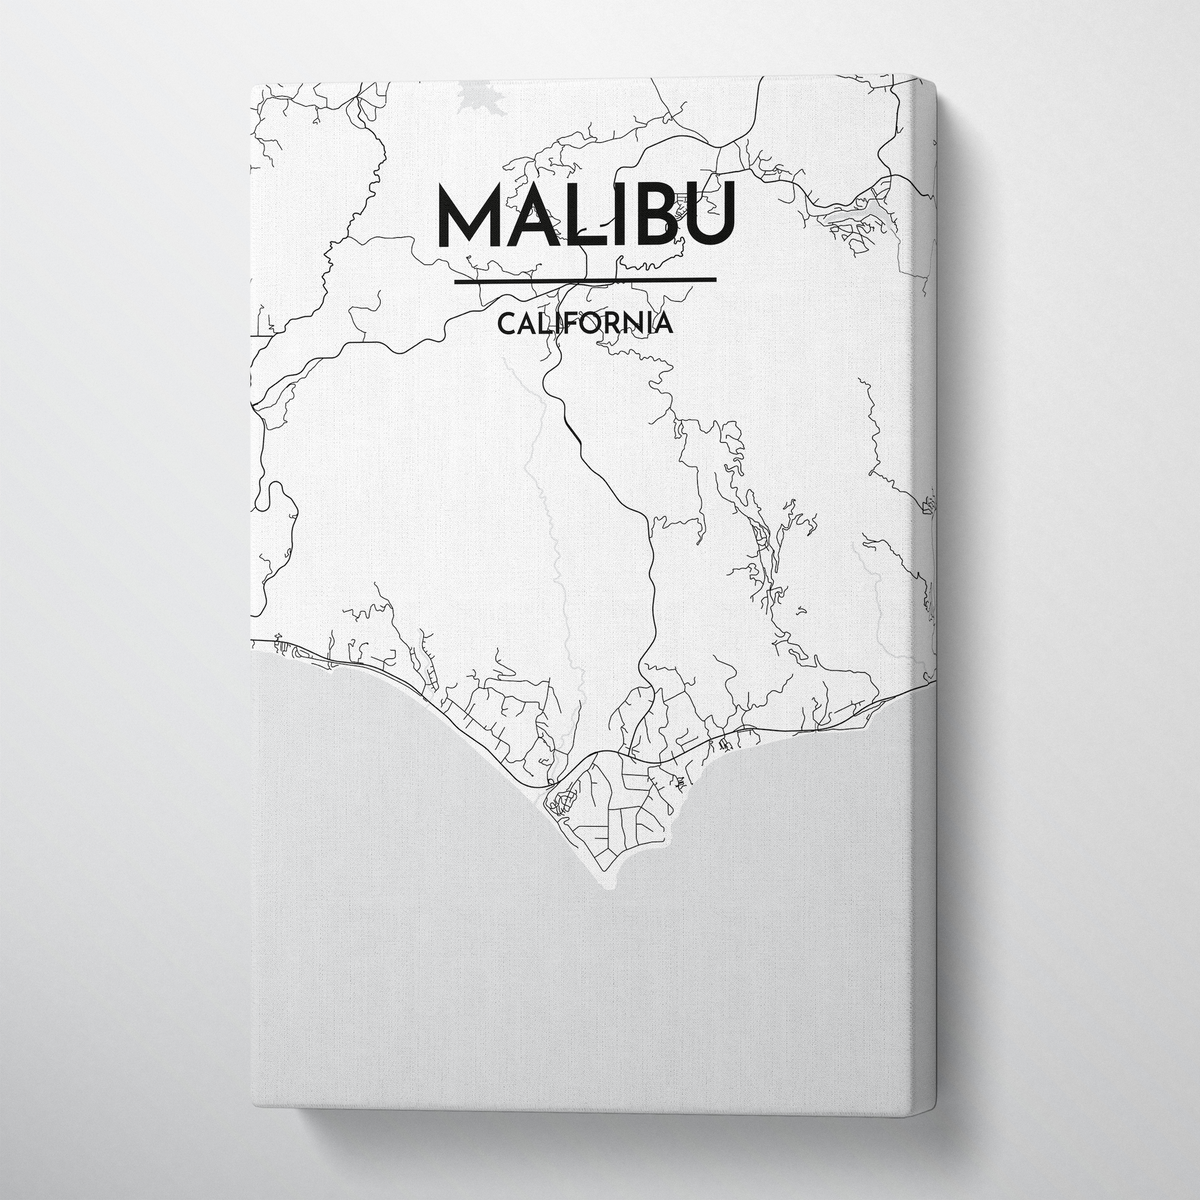 Malibu City Map Canvas Wrap - Point Two Design - Black & White Print